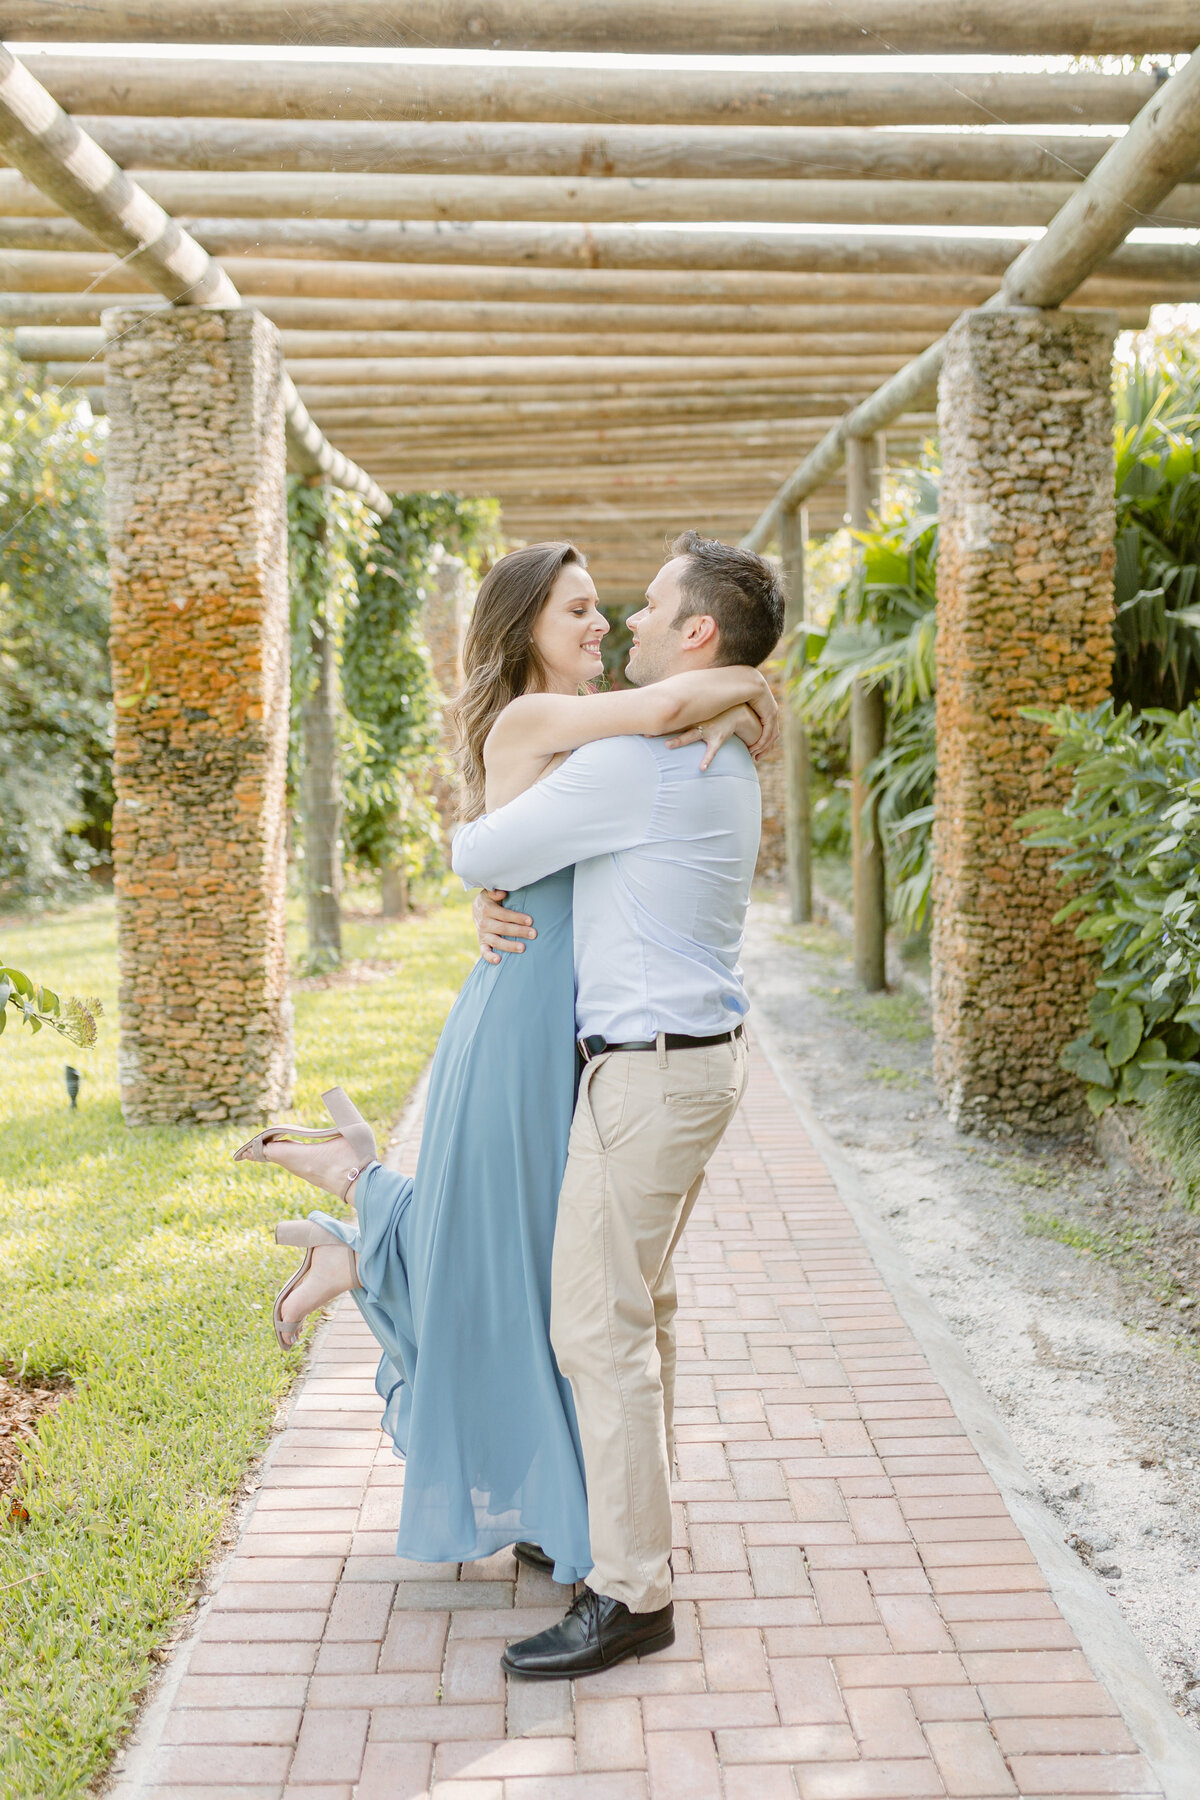 Fairchild Tropical Gardens Engagement Photography Session 7